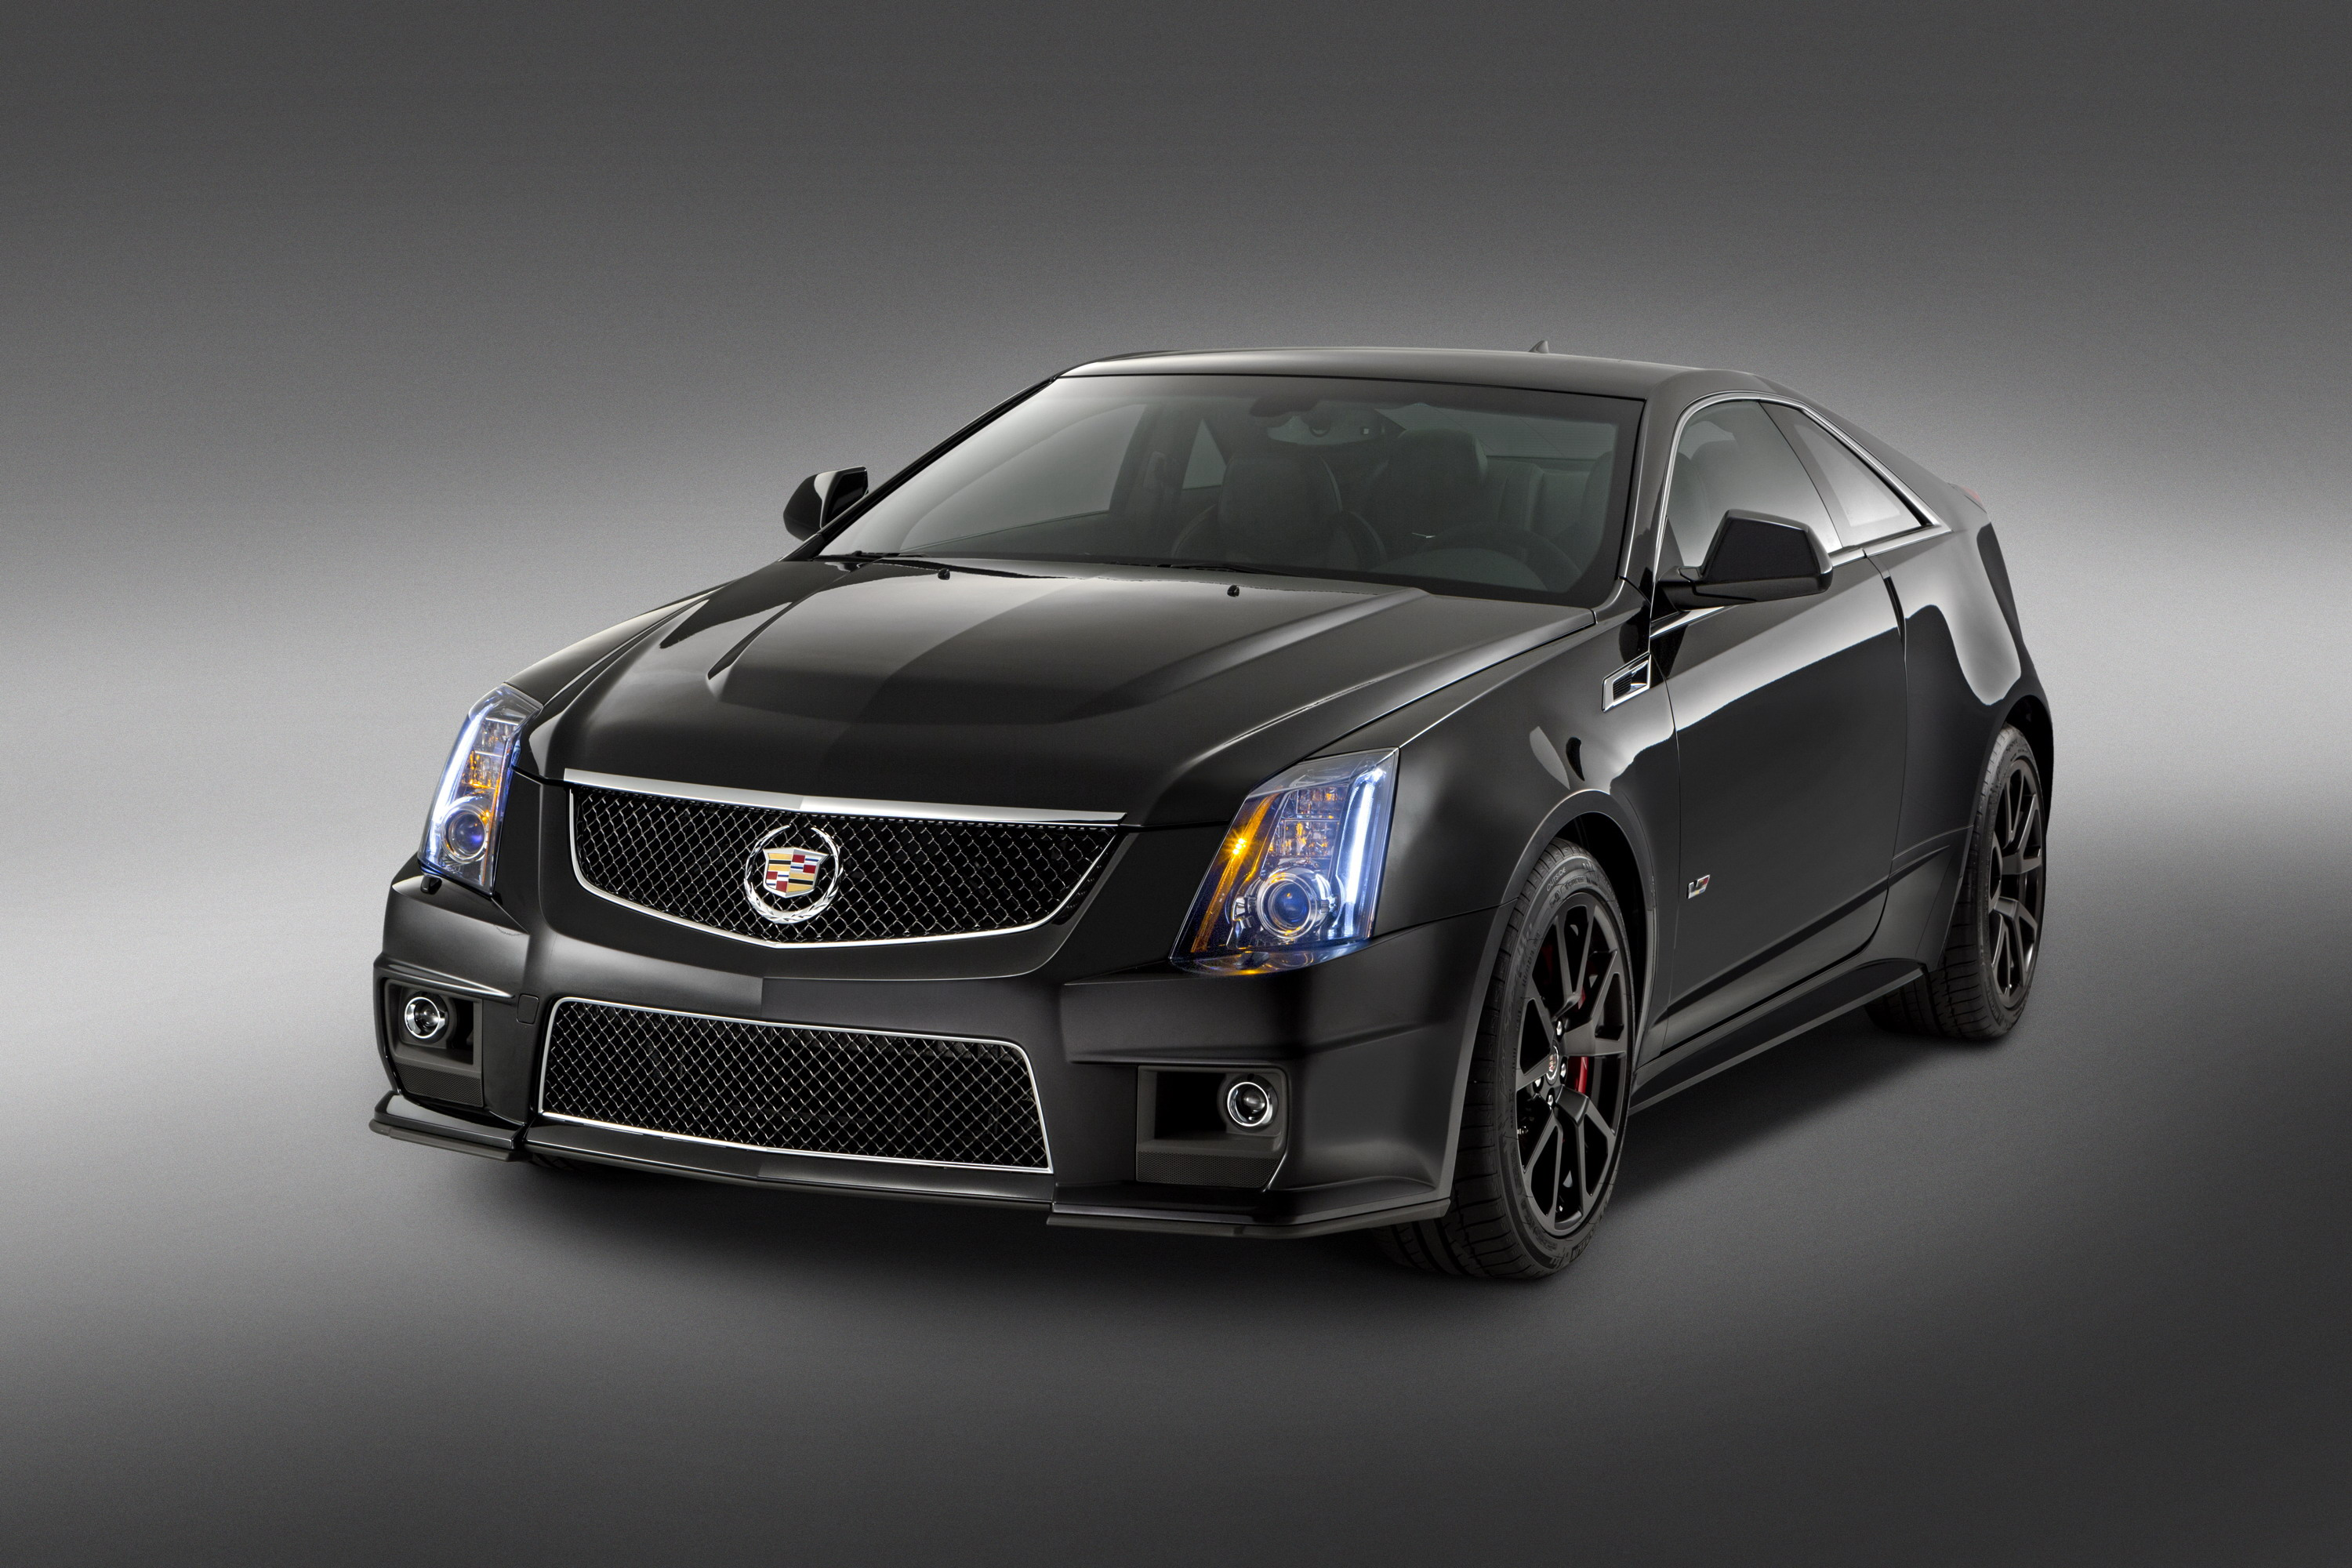 2015 Cadillac CTS-V Coupe | Top Speed